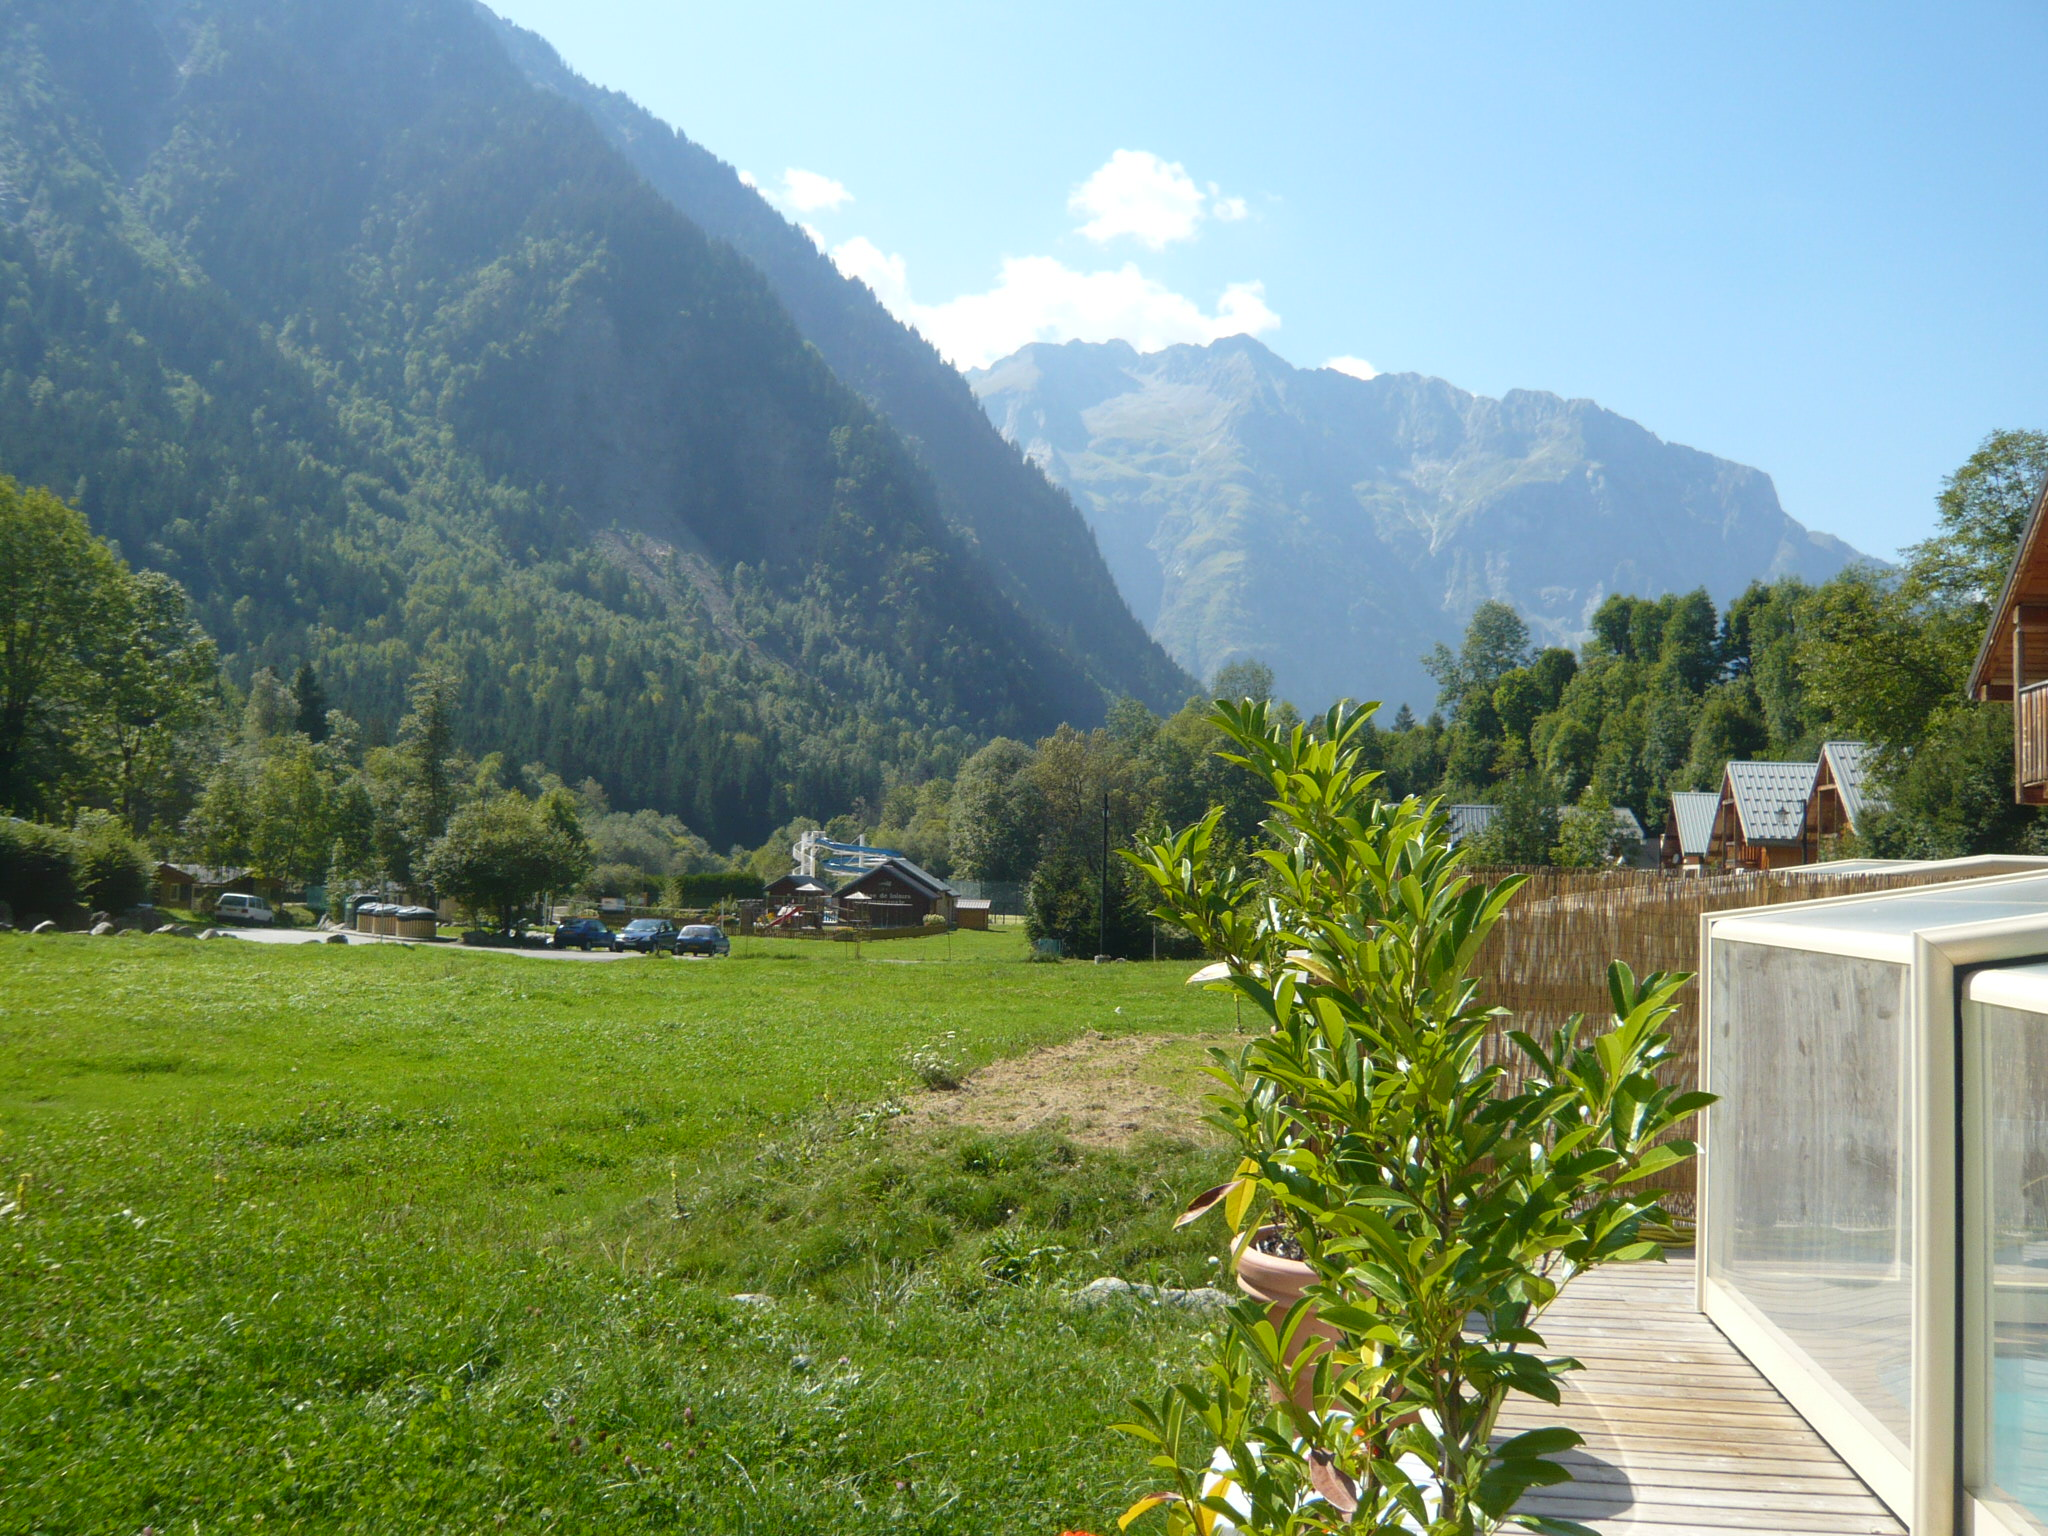 Le Planet I & II, Venosc (self catered chalets) - Lovely views